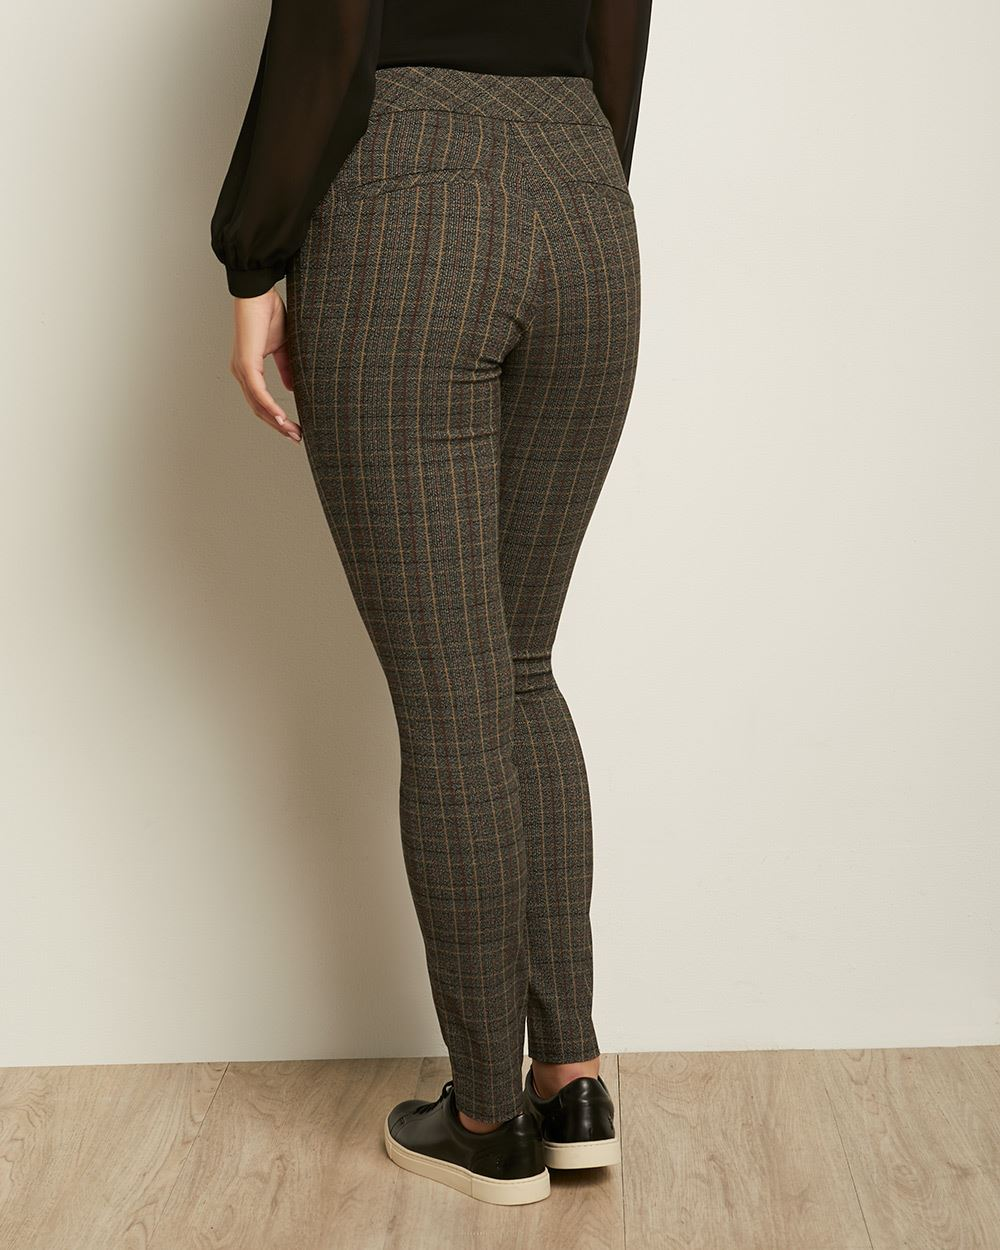 C&G Grey and Beige Check City Legging Pant - 31.5''